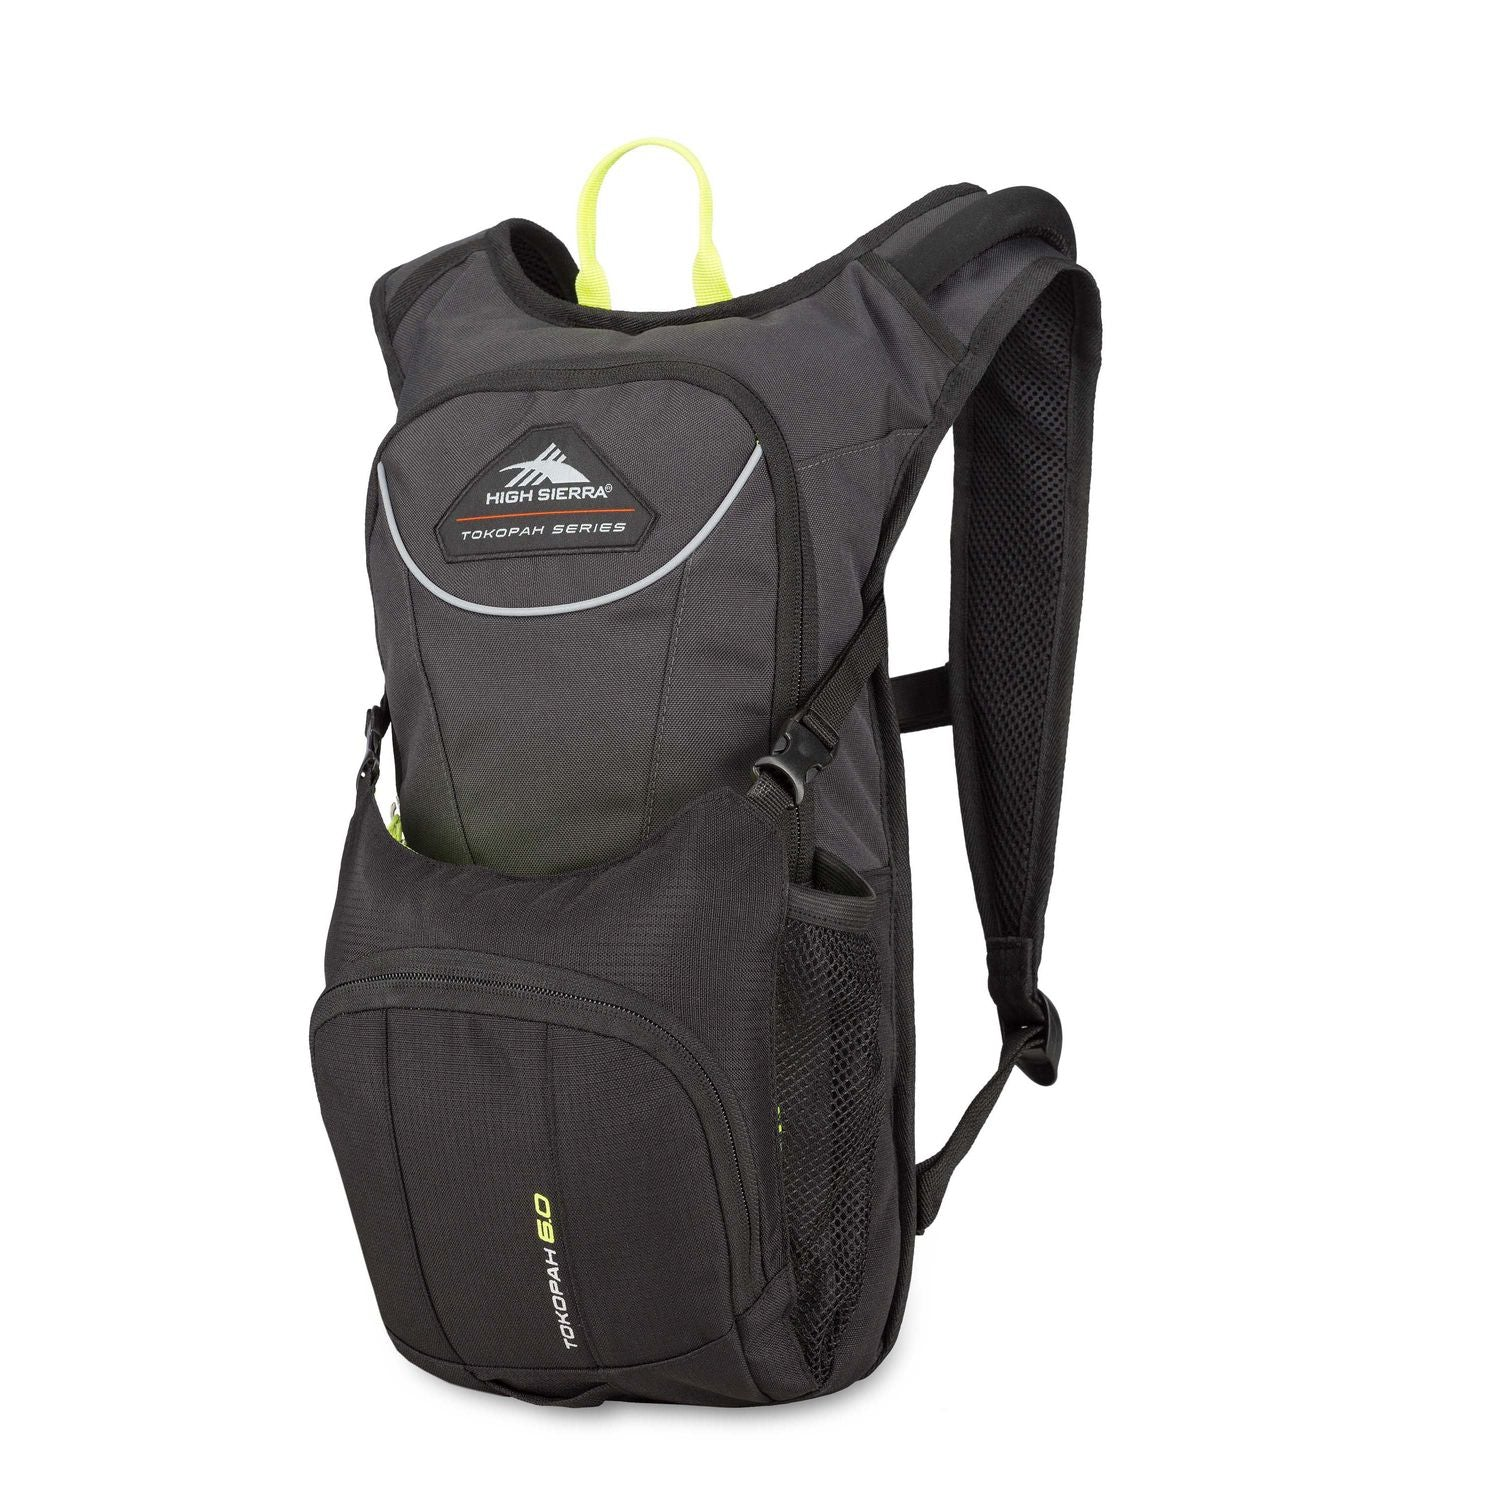 High Sierra Tokopah 6L Raven/Black/Zest Hydration Pack